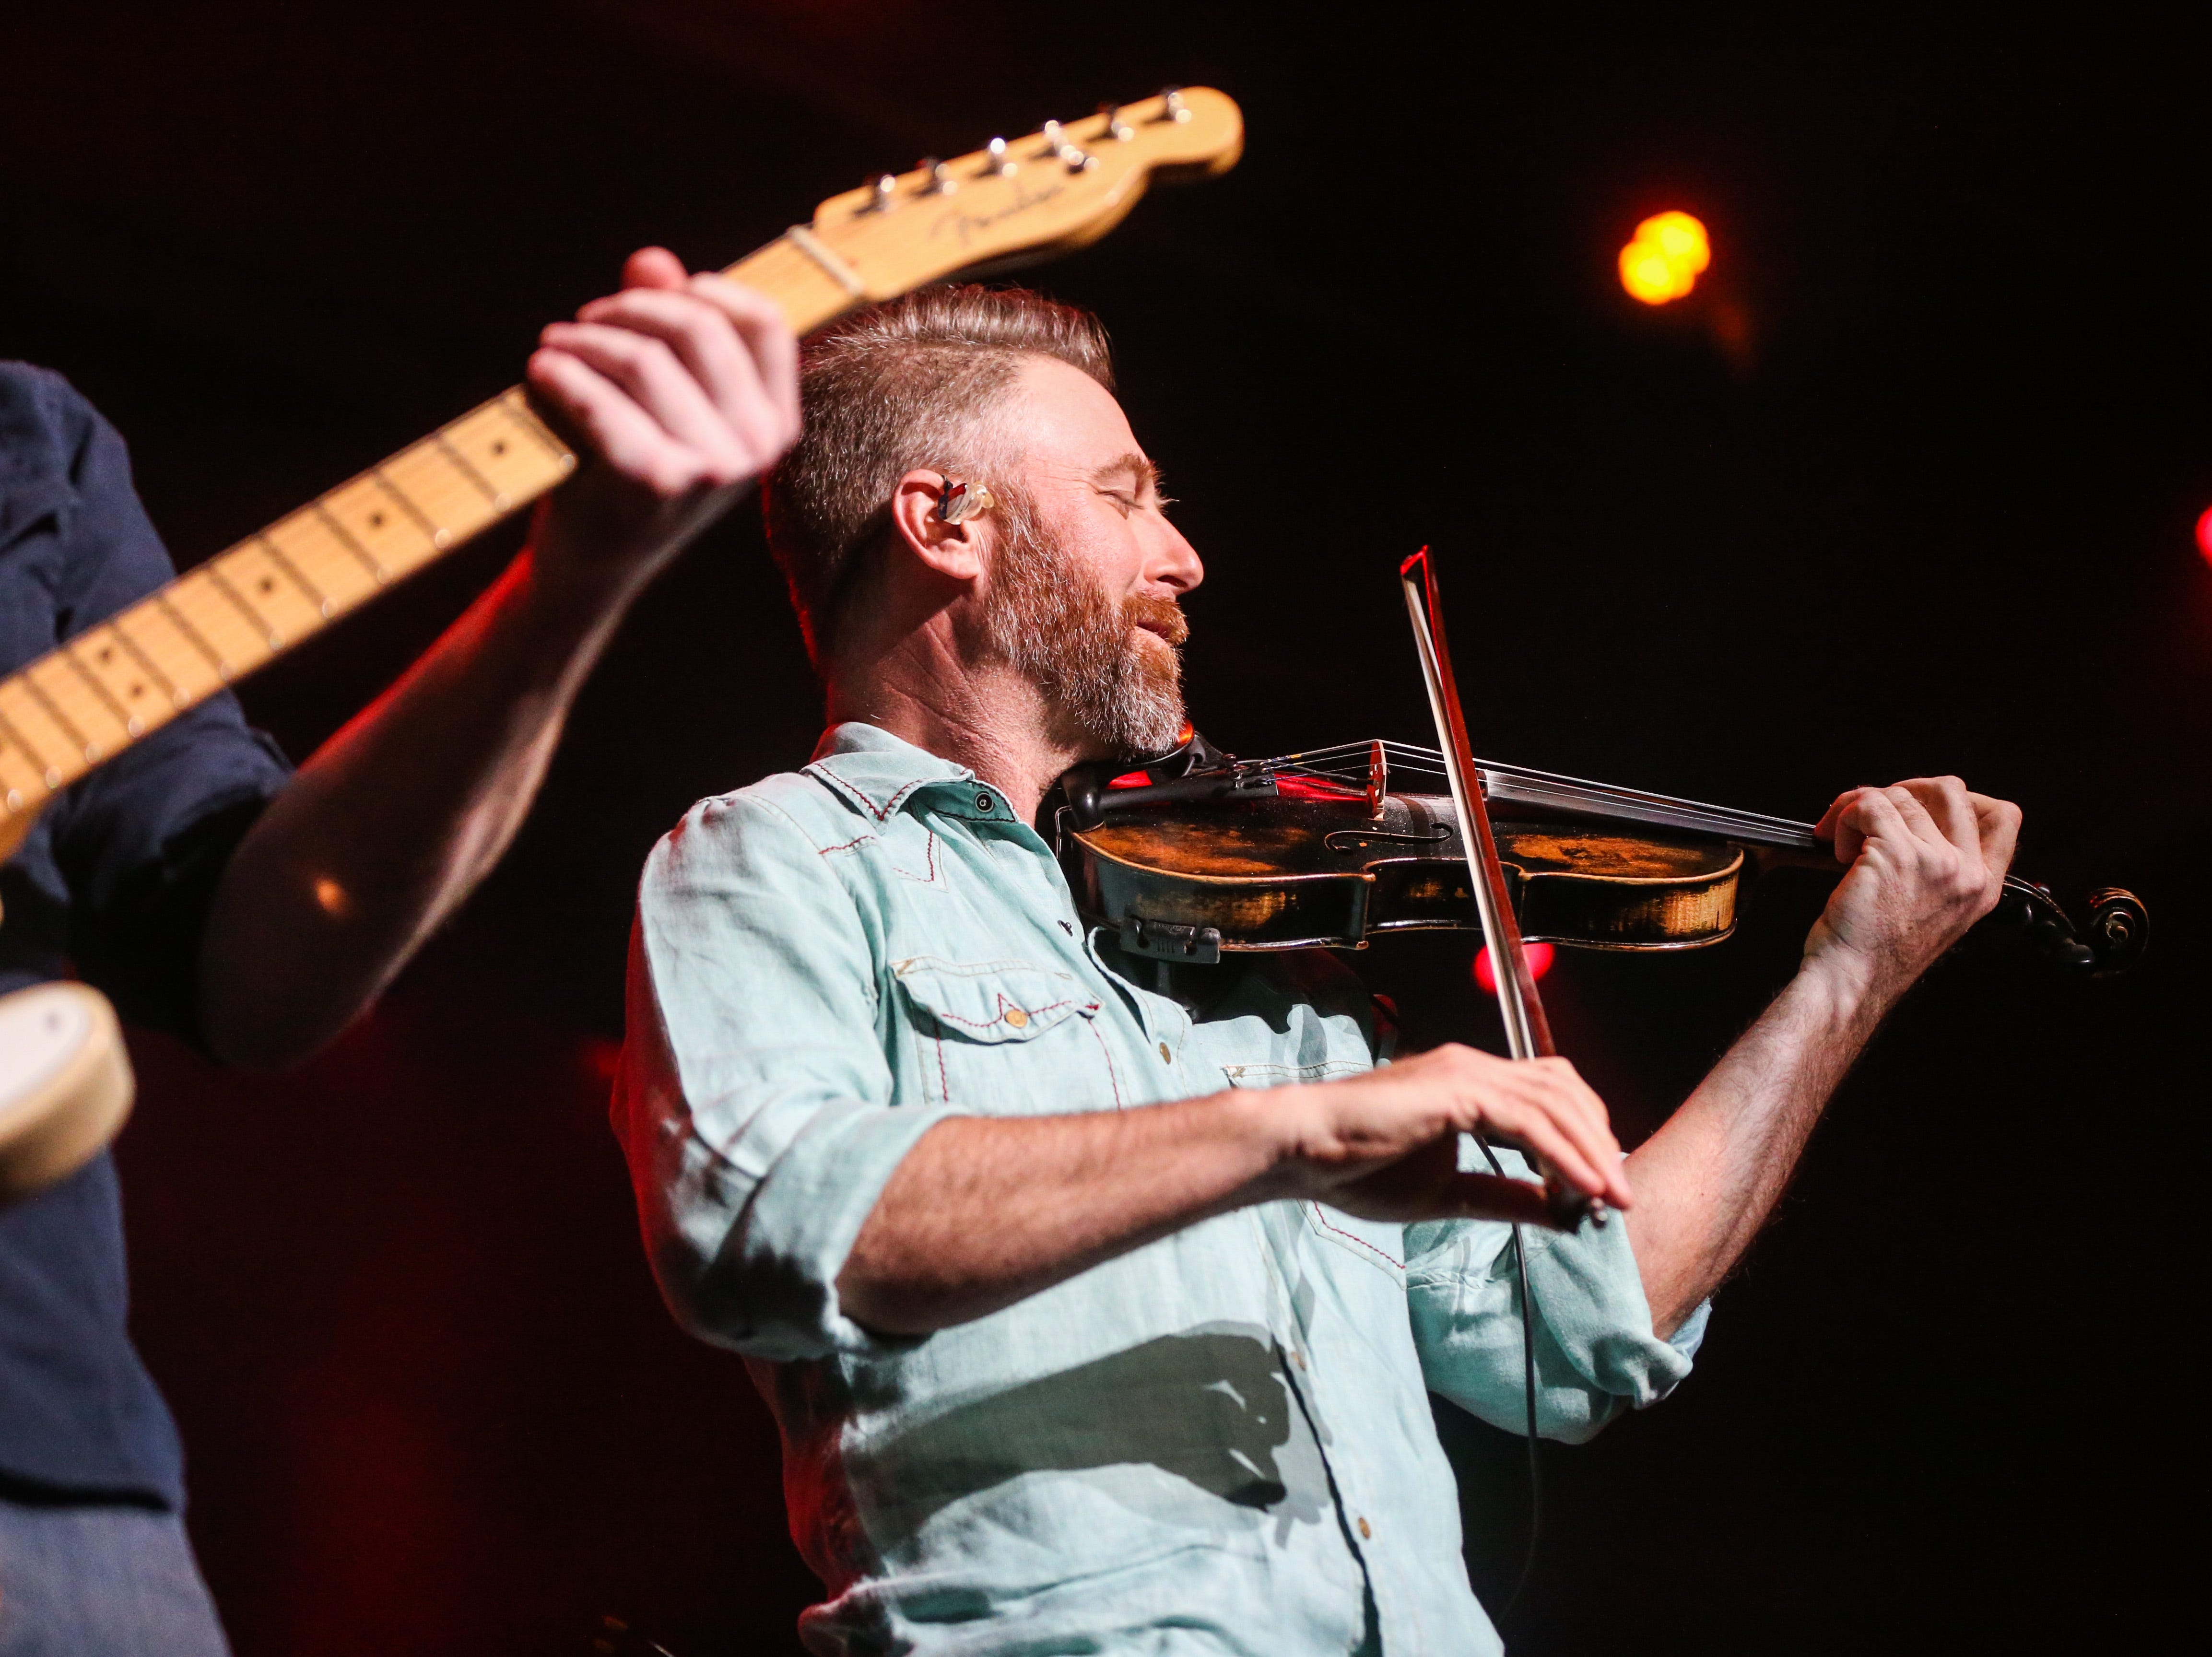 Josh Turner band member performs during the concert Friday, April 5, 2019, at Murphey Performance Hall.